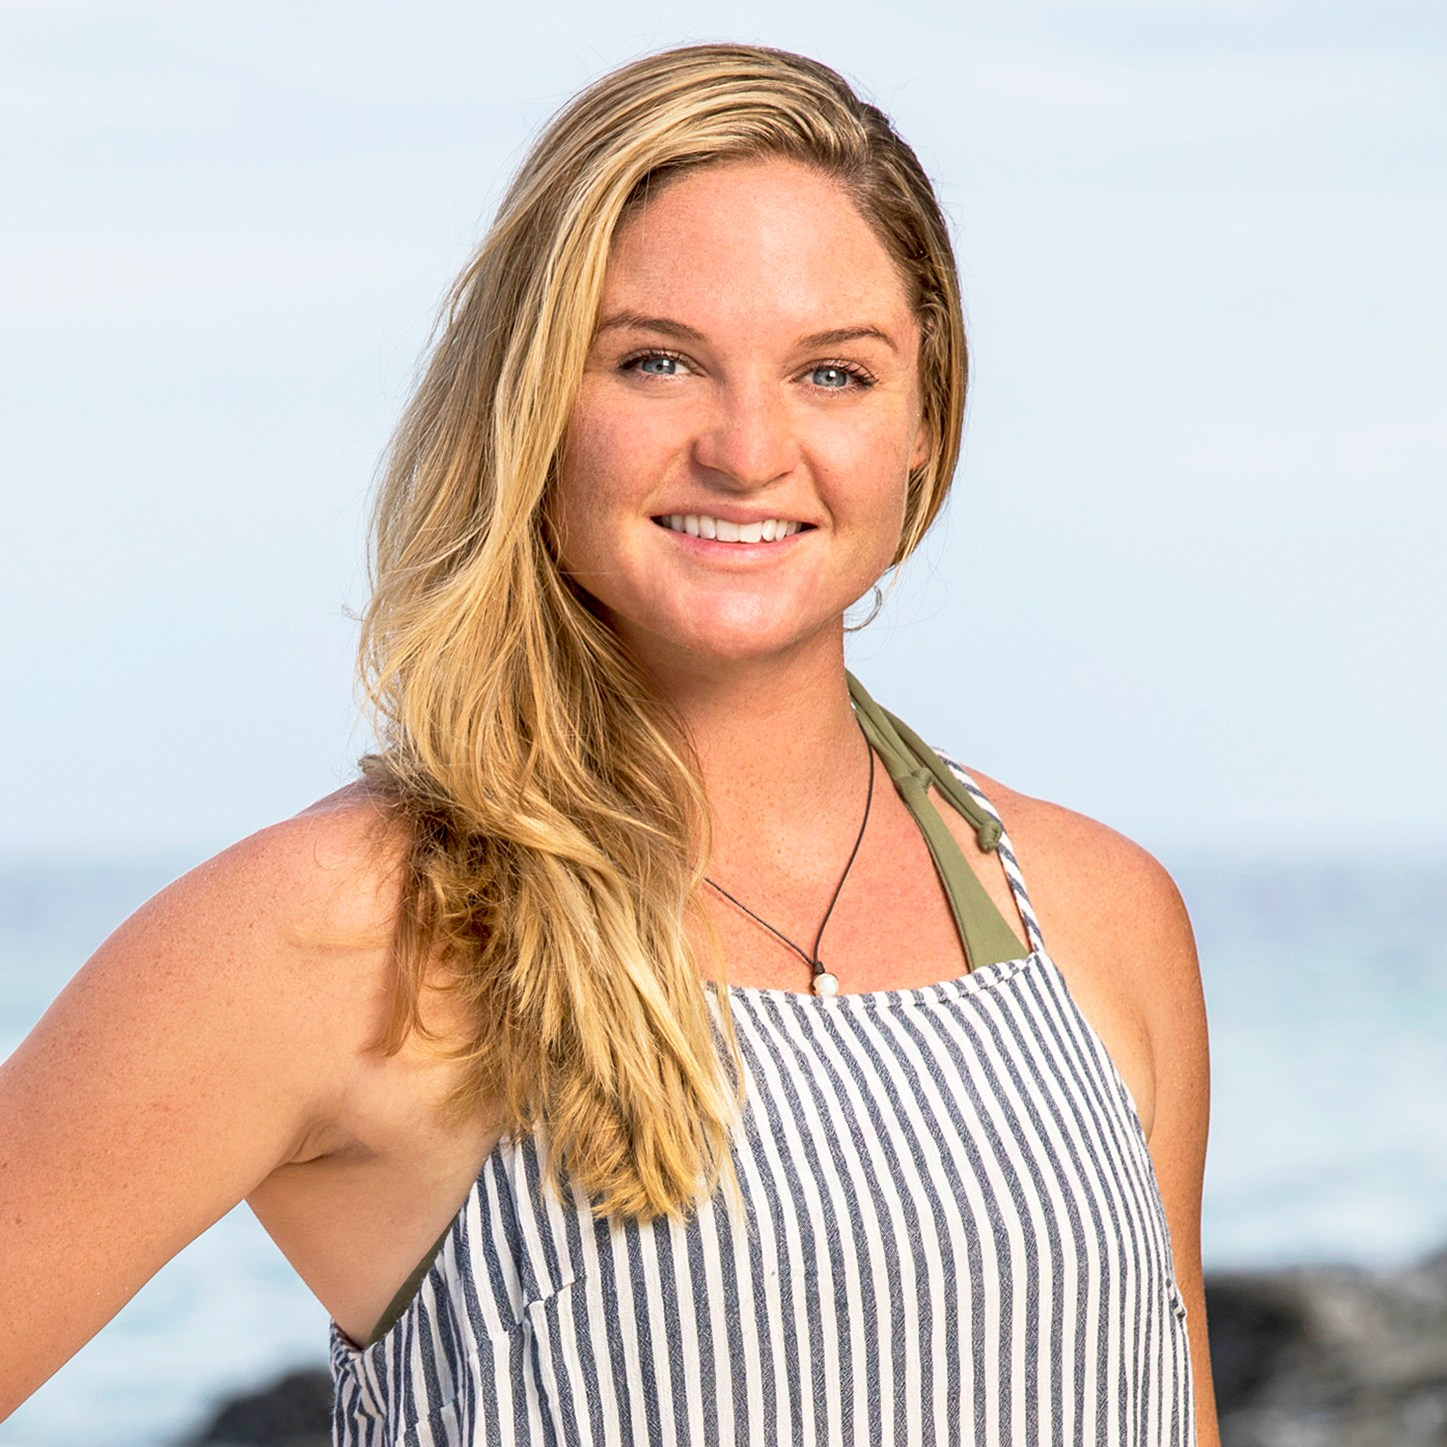 Ashley Nolan on Survivor themed themed 'Heroes vs. Healers vs. Hustlers'